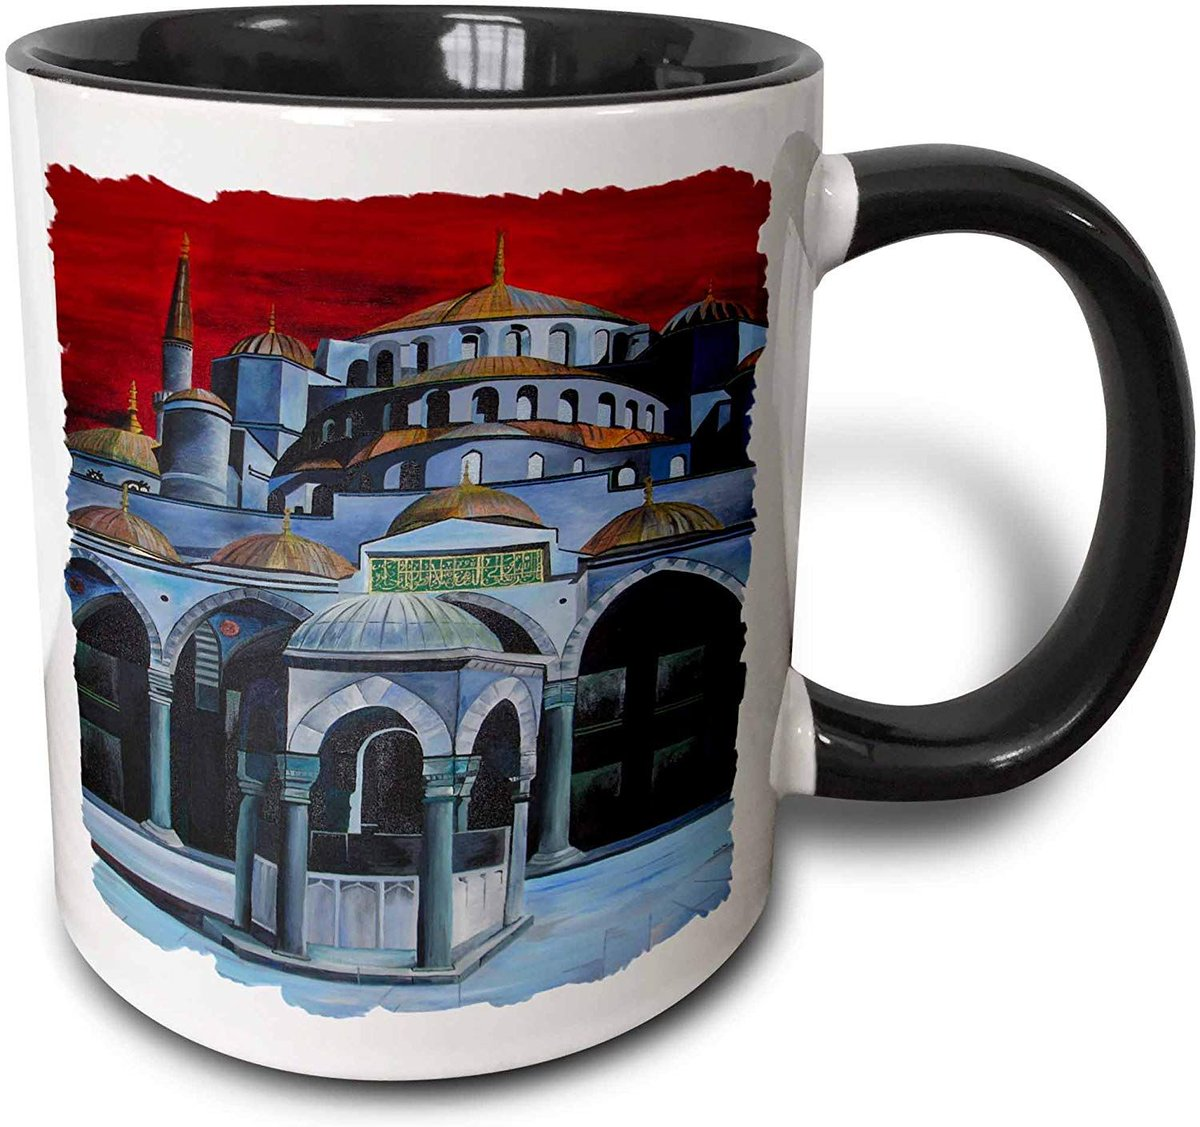 #SultanAhmedMosque #Istanbul #IstanbulLover A #perfectgift and #mug for any occasion. For coffee if hotchocolate is not your cupoftea.  A #fun and #unique #giftidea. @3DRose #ATSocialMedia   via @amazon